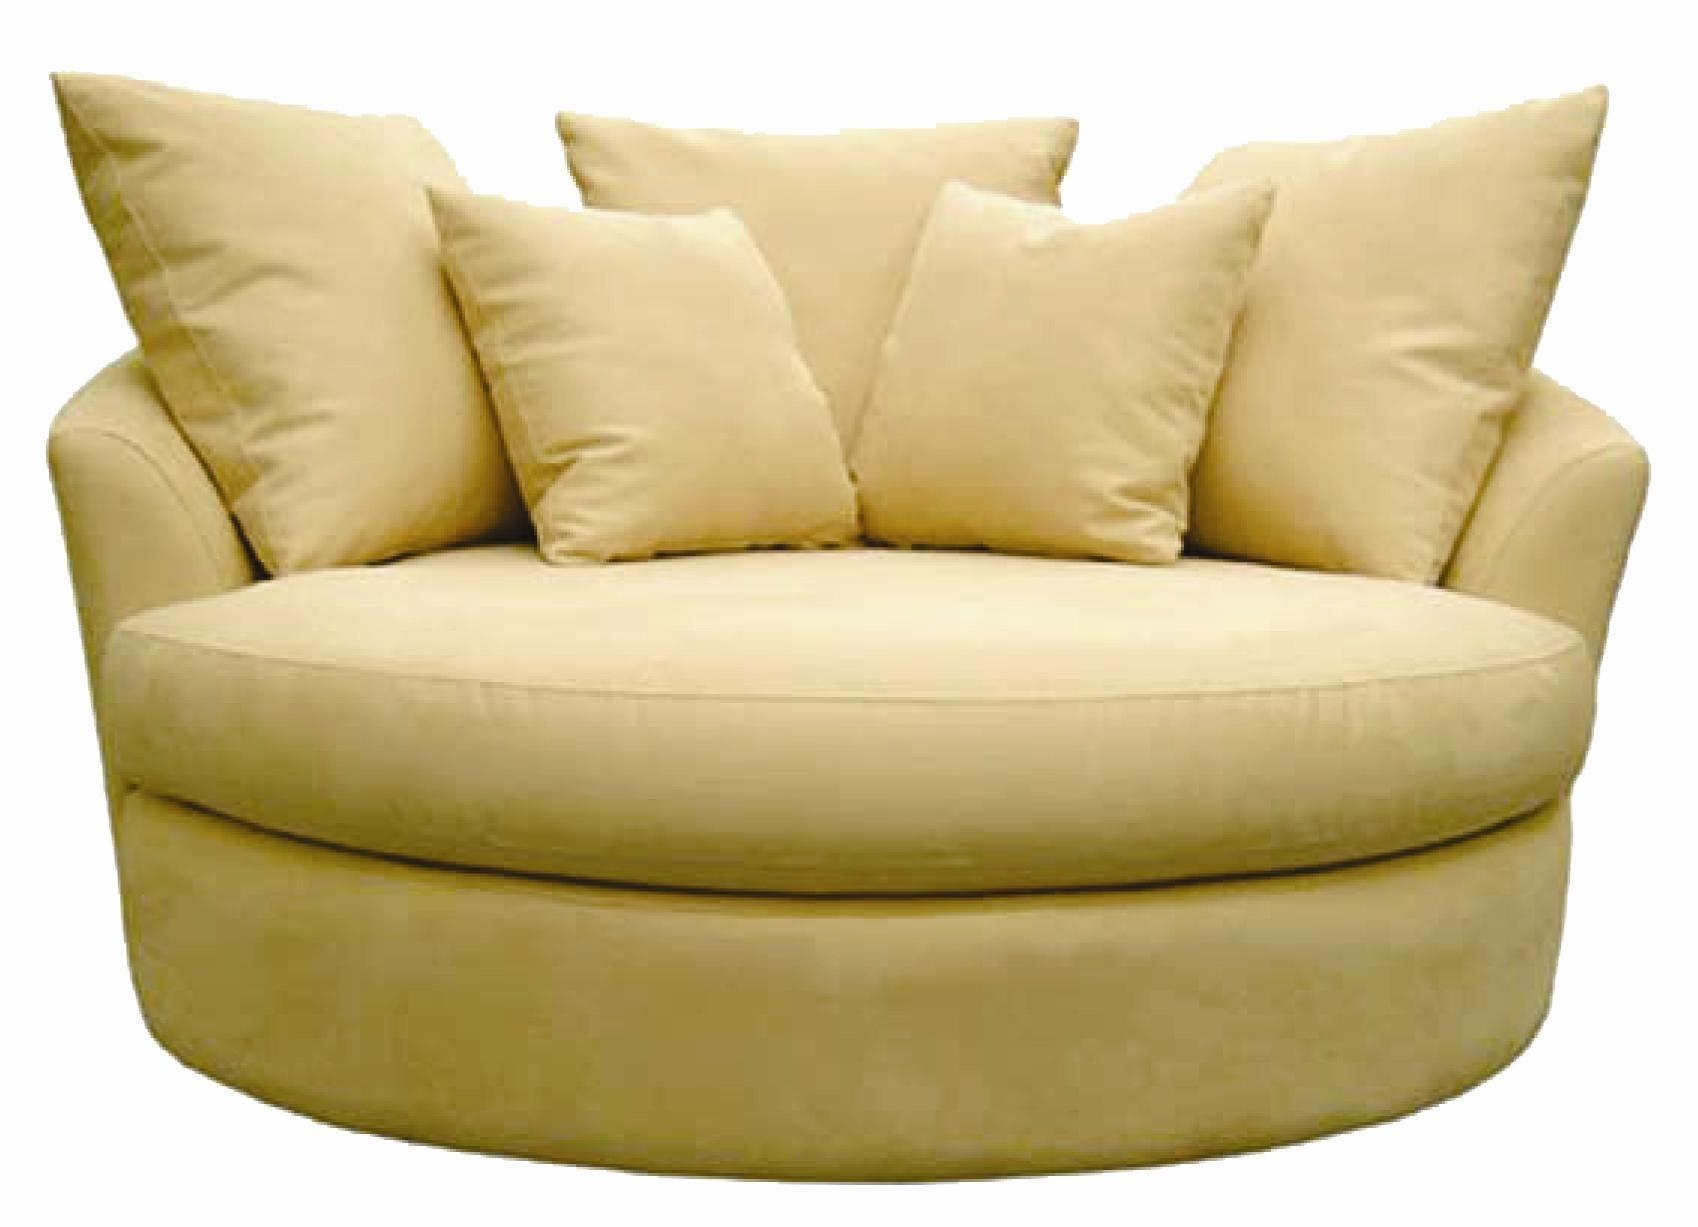 Round Sofa Chair Covers | Tehranmix Decoration Regarding Swivel Sofa Chairs (Image 10 of 20)